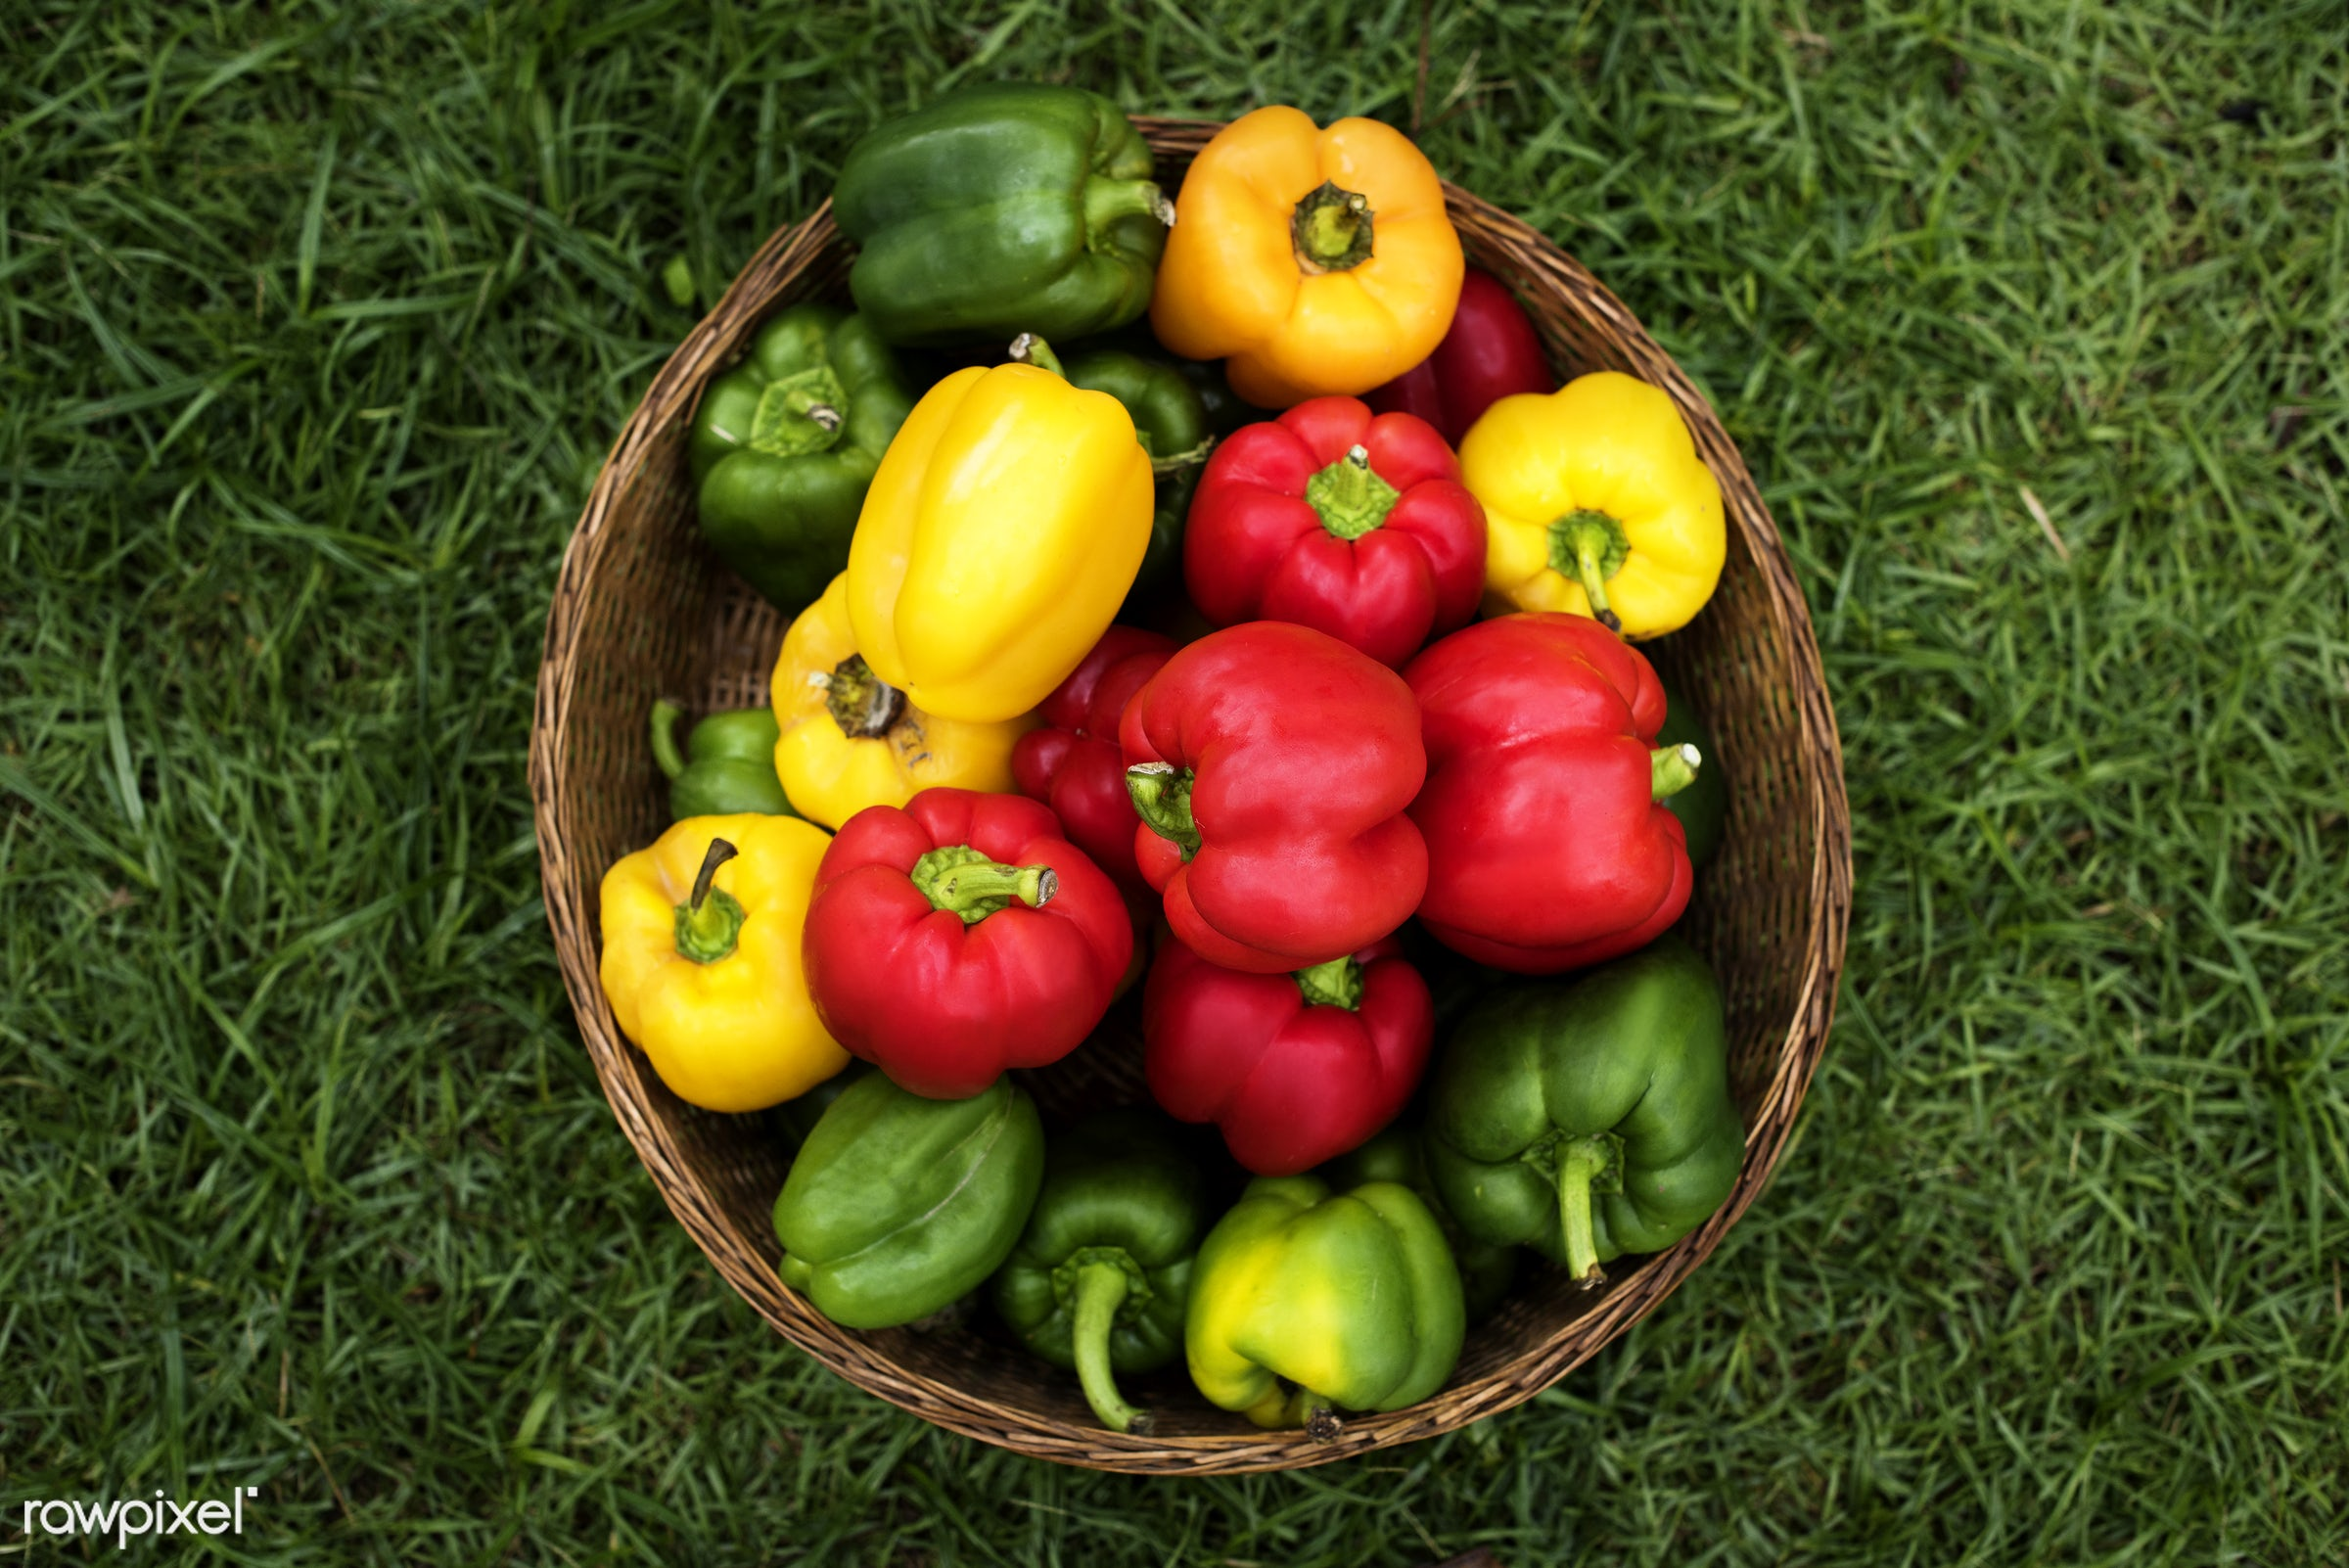 different, raw, holding, bucket, bell pepper, fiber, kind, nature, fresh, hands, ingredient, closeup, culinary, veggies,...